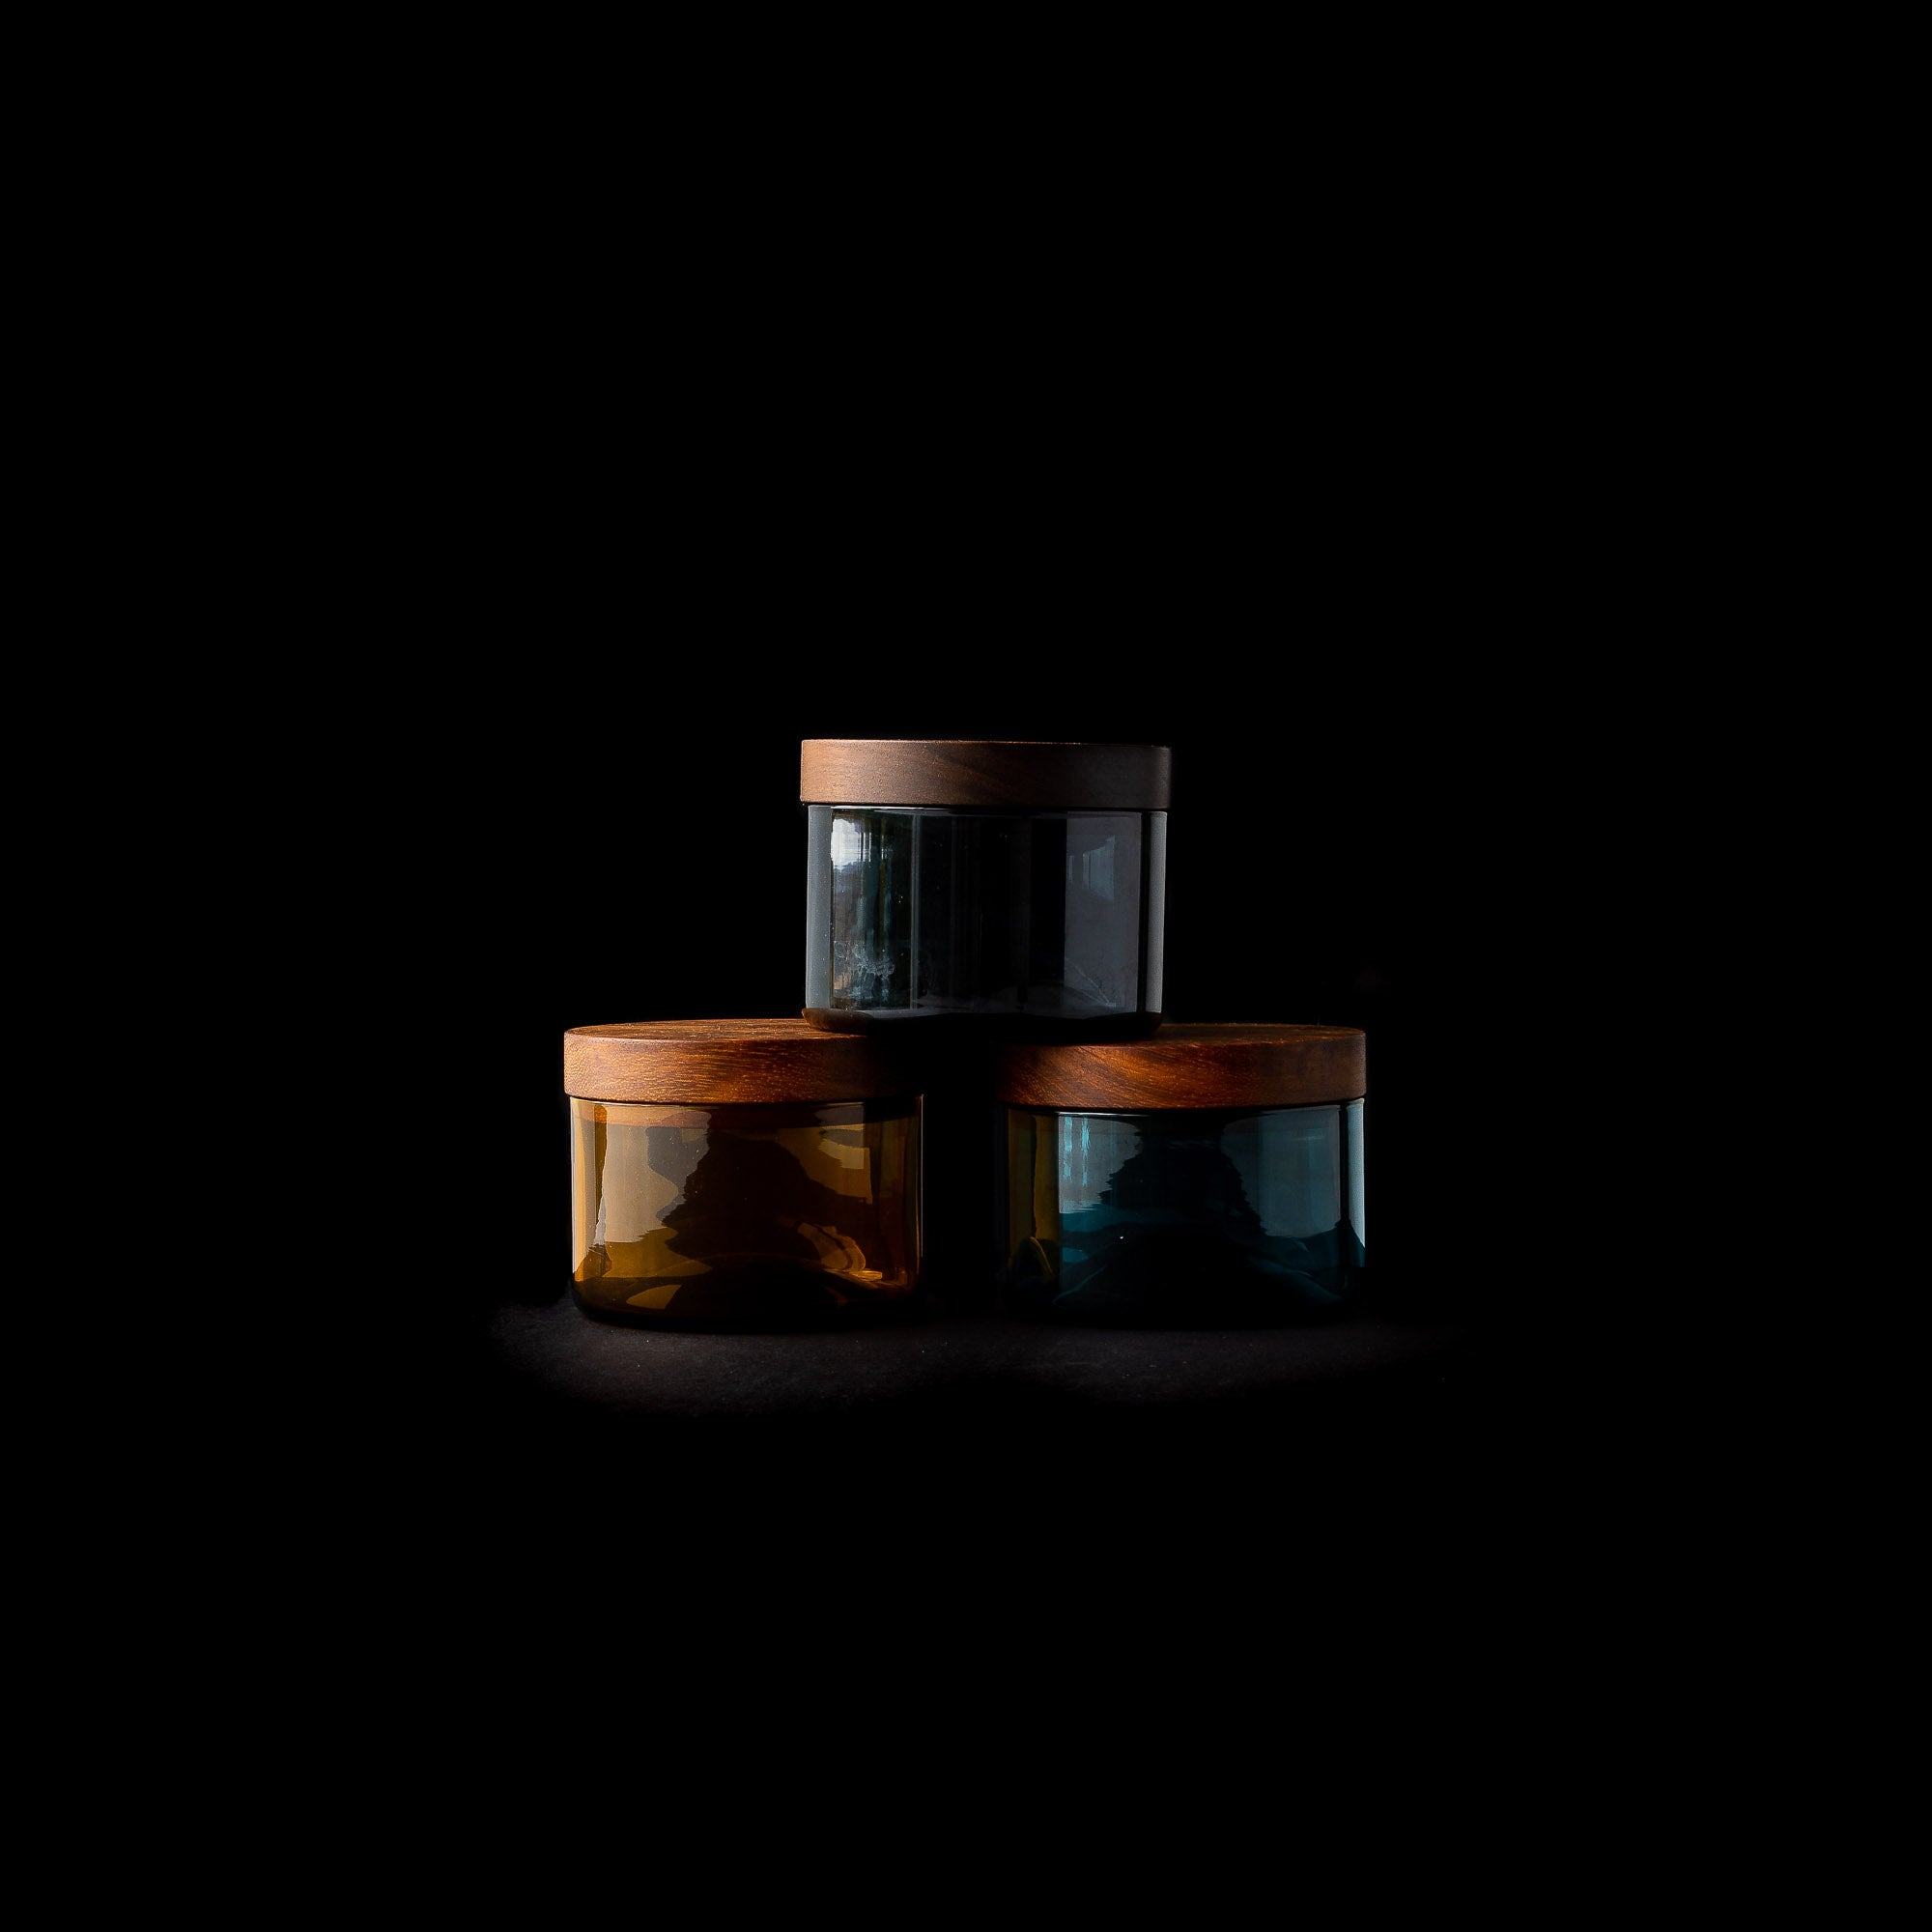 Three Hand-blown Salt Cellars With Black Walnut Cover Shown on Black Background - Sold by Chic & Basta